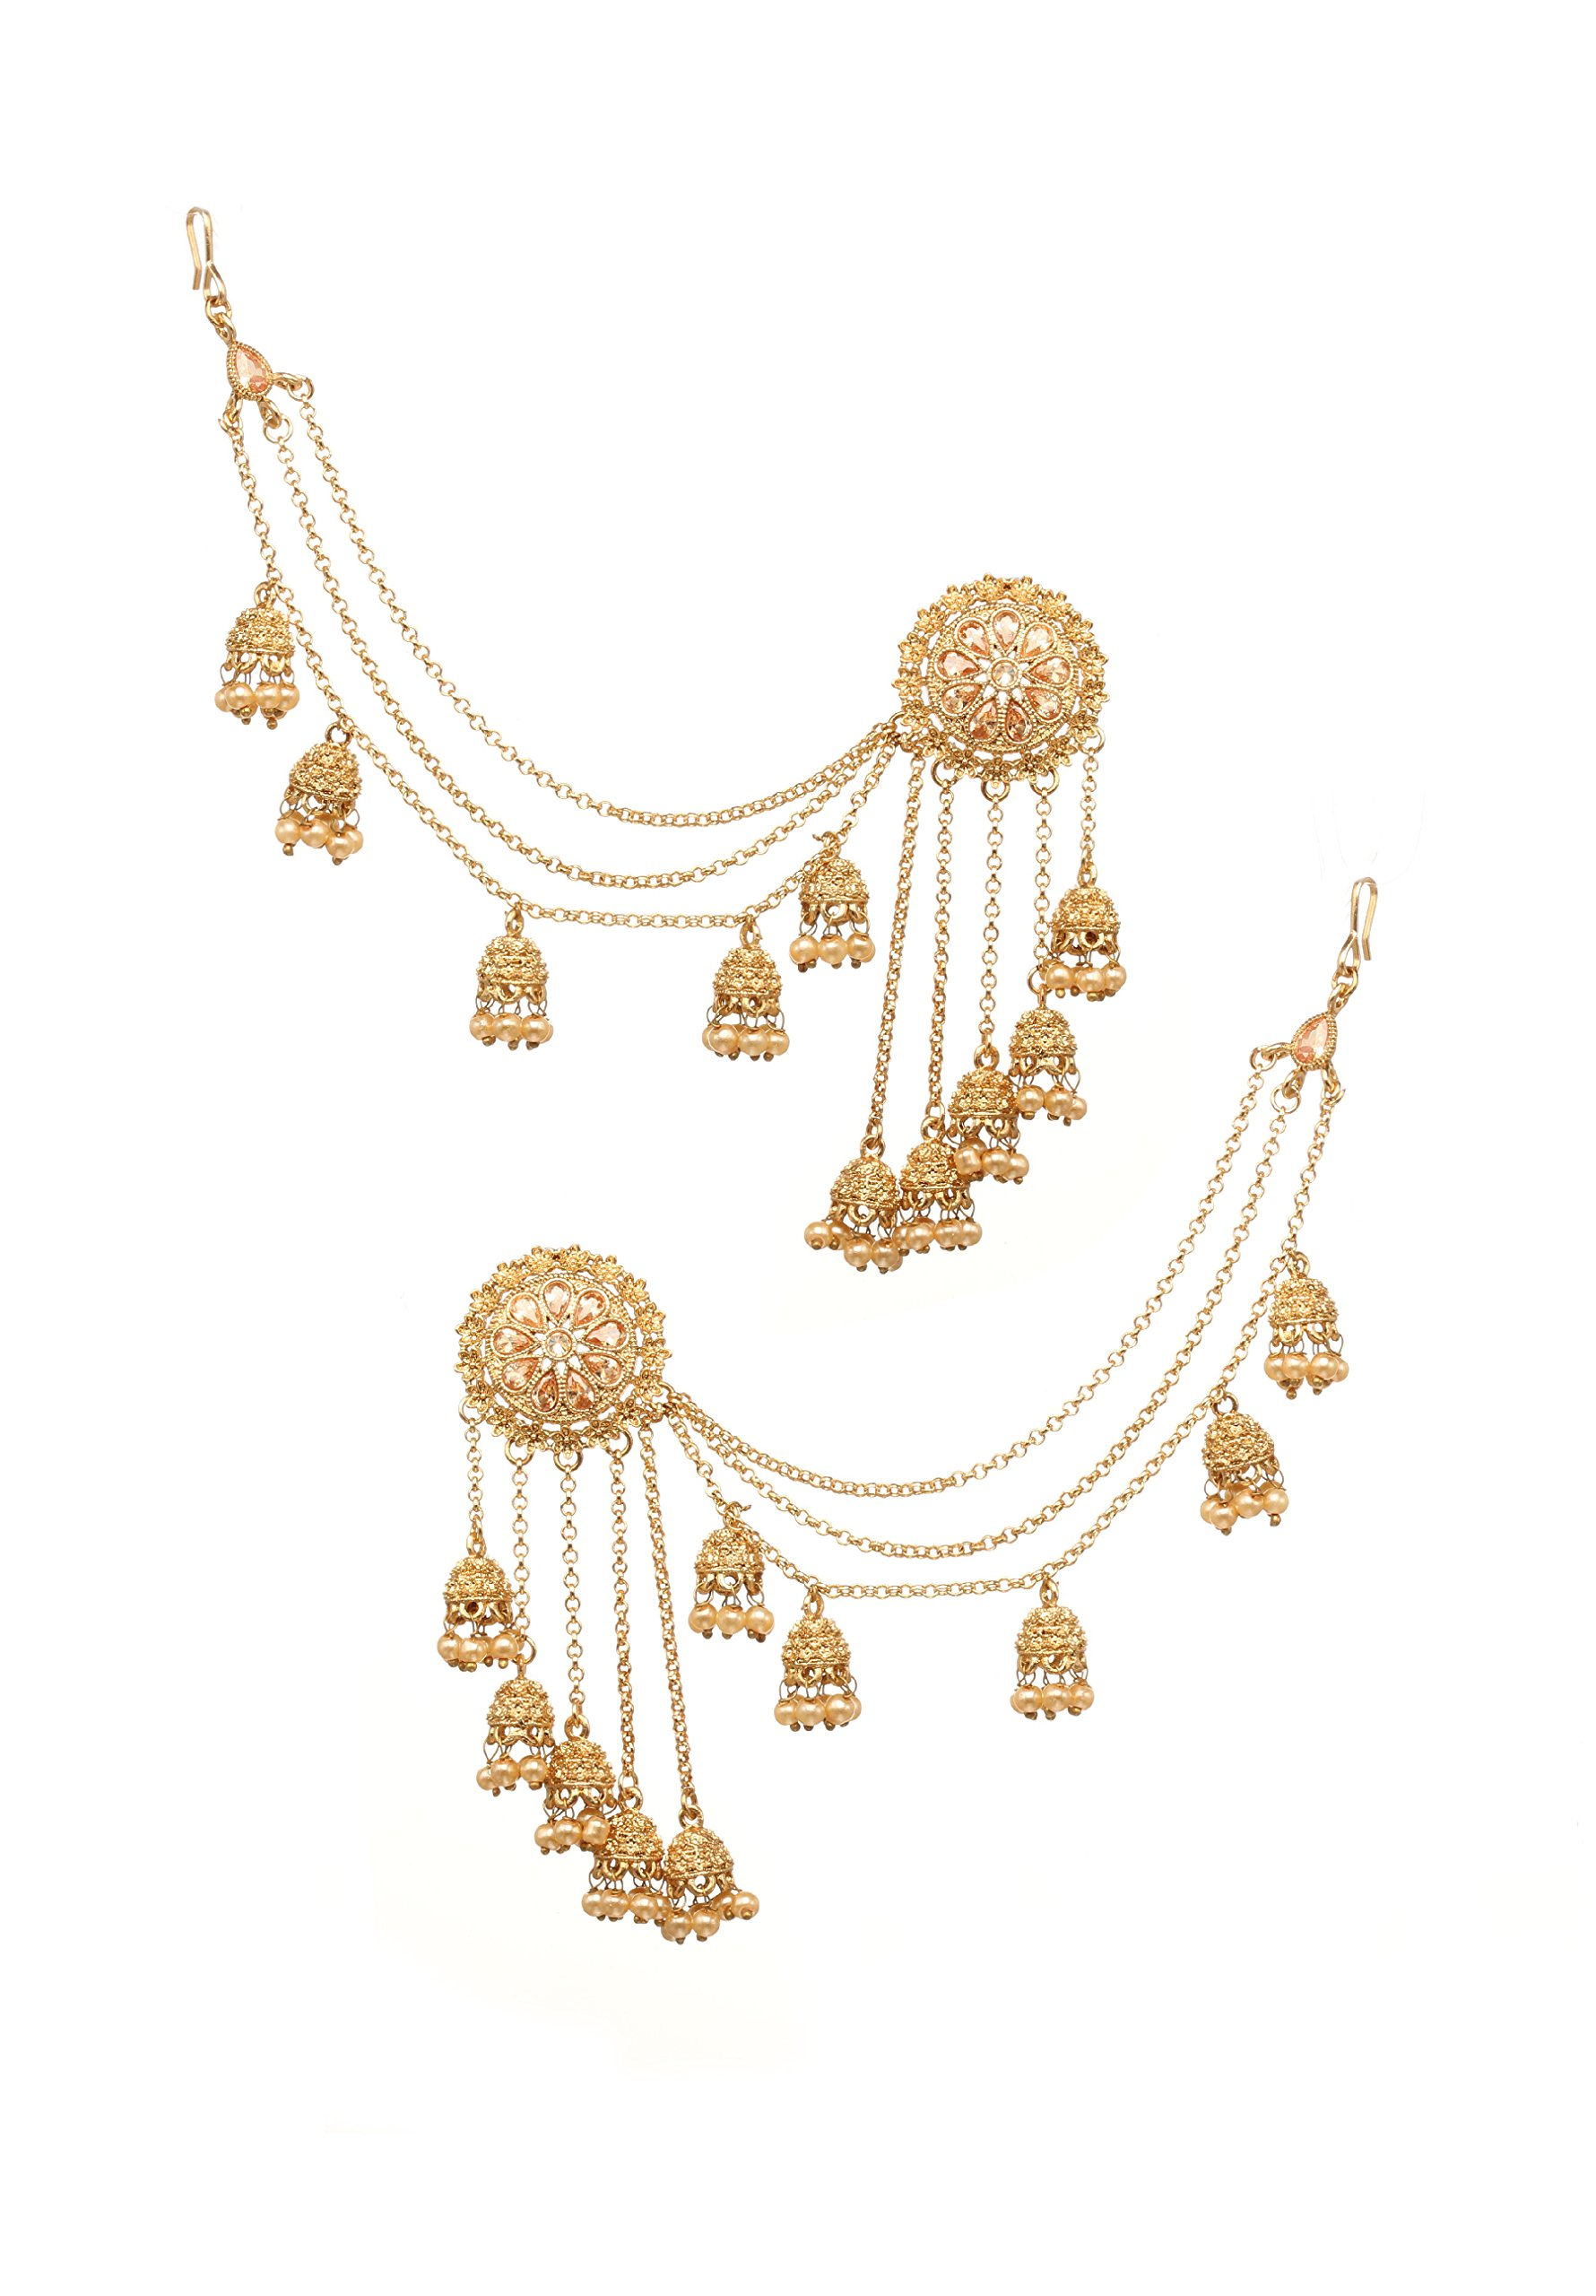 Bindhani Premium Indian Jewelry Wedding Long Chain Devsena Bahubali Jhumka Jhumki Bollywood Jewelry Earrings For Women